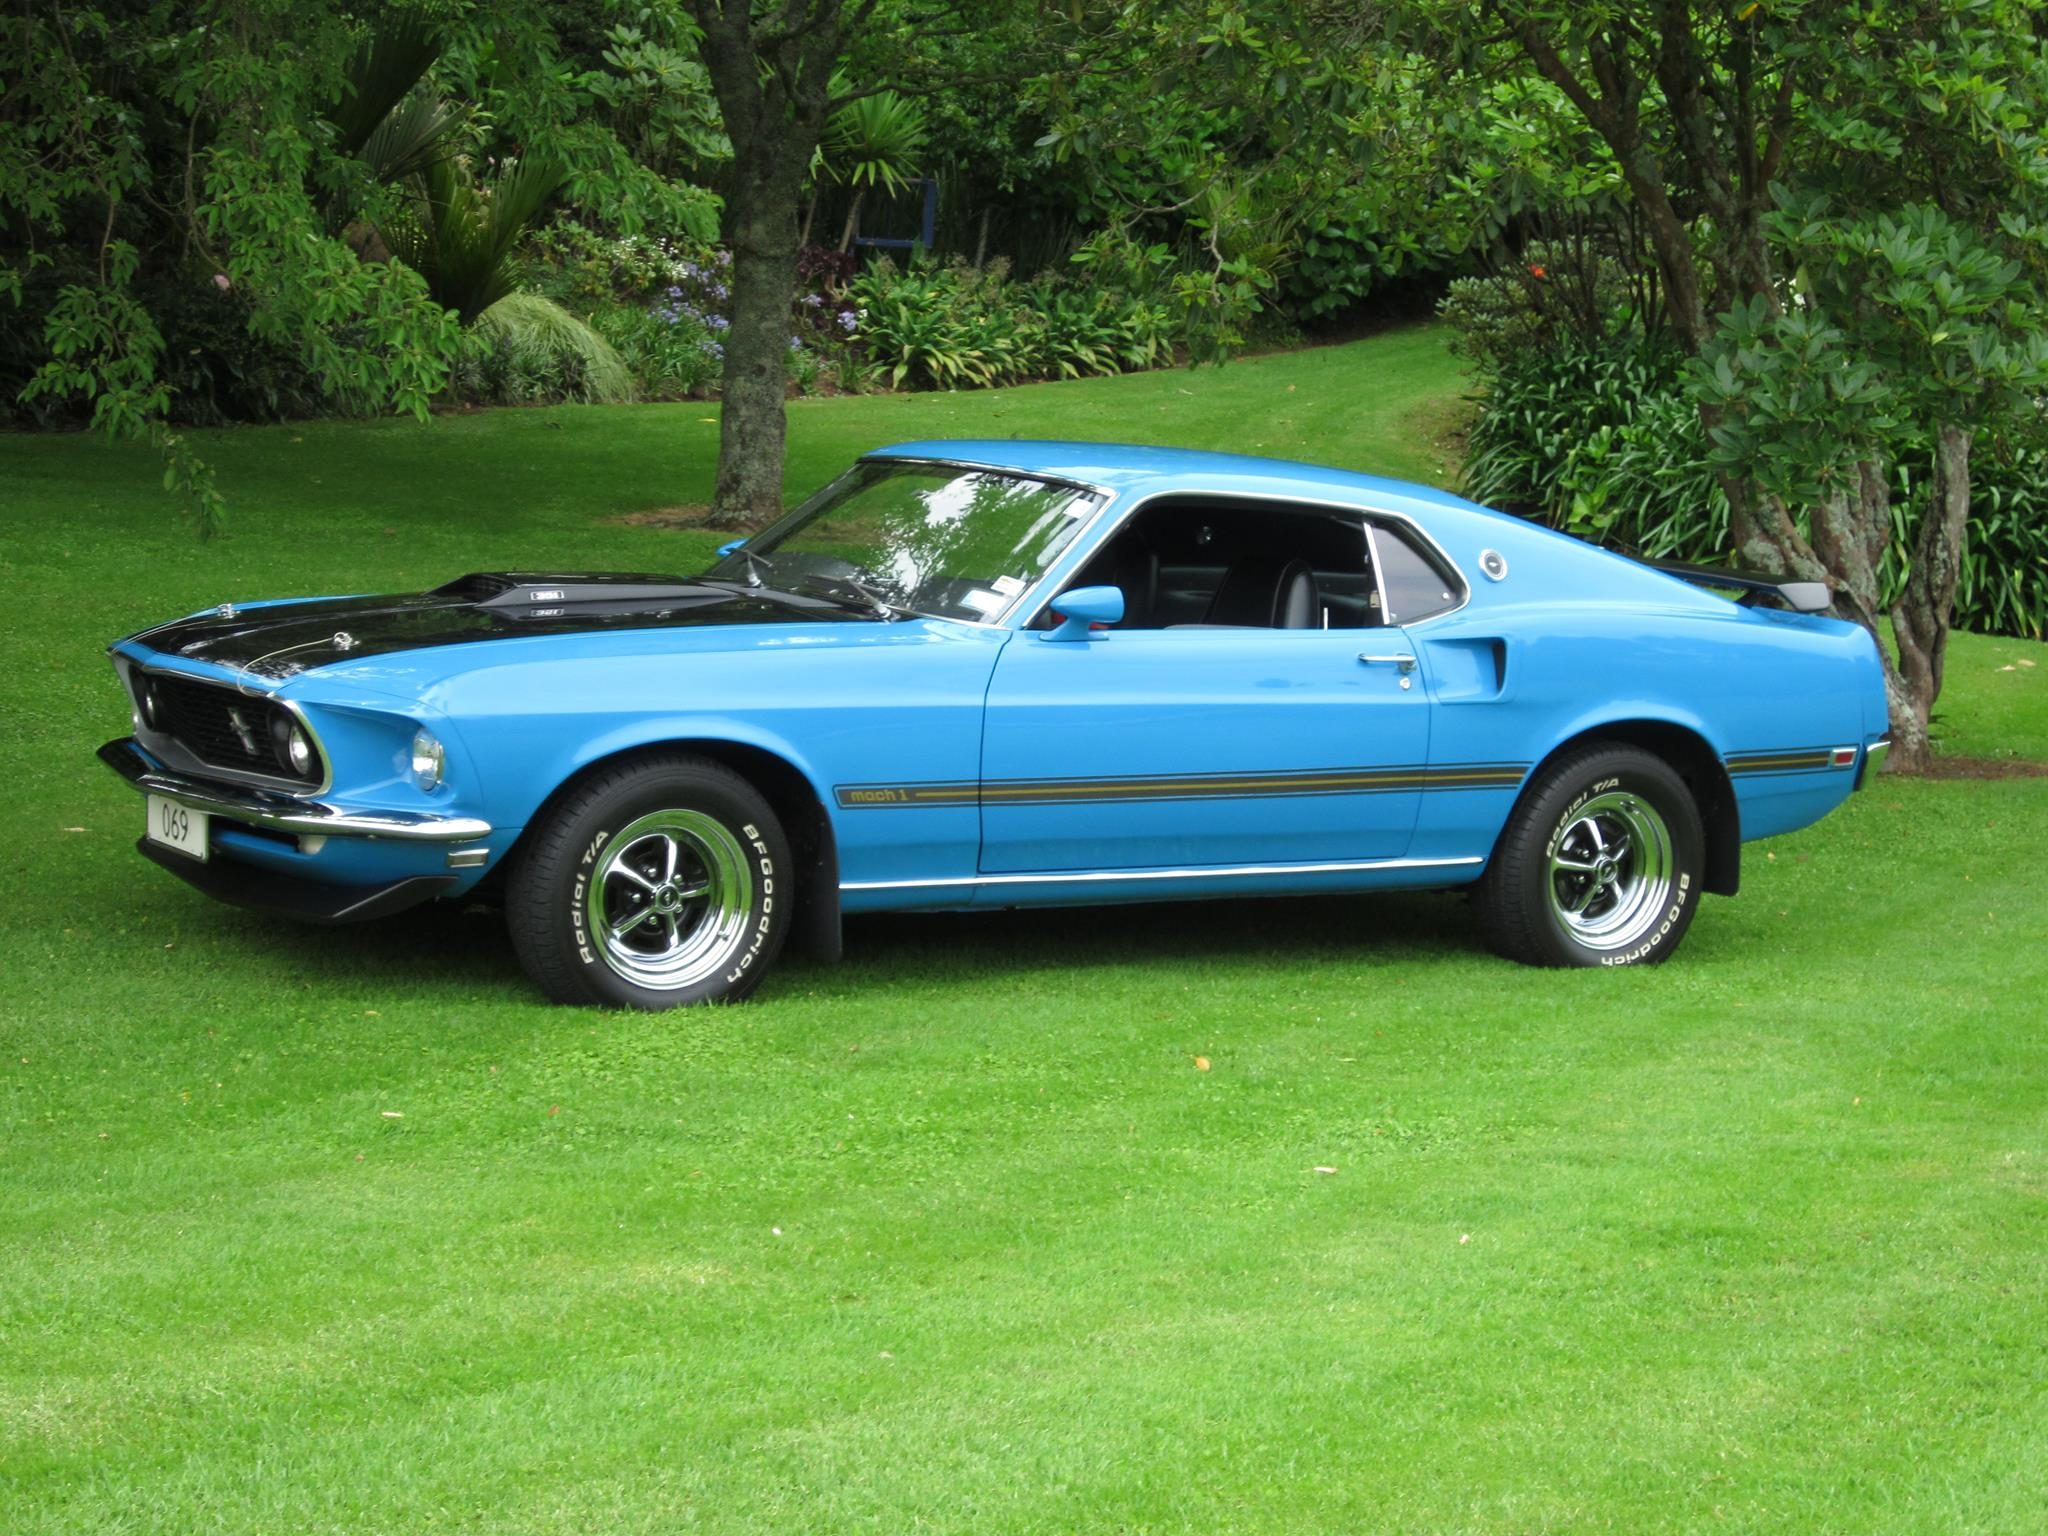 The mach 1 was a package that was available on one of the three bodystyles of the 1969